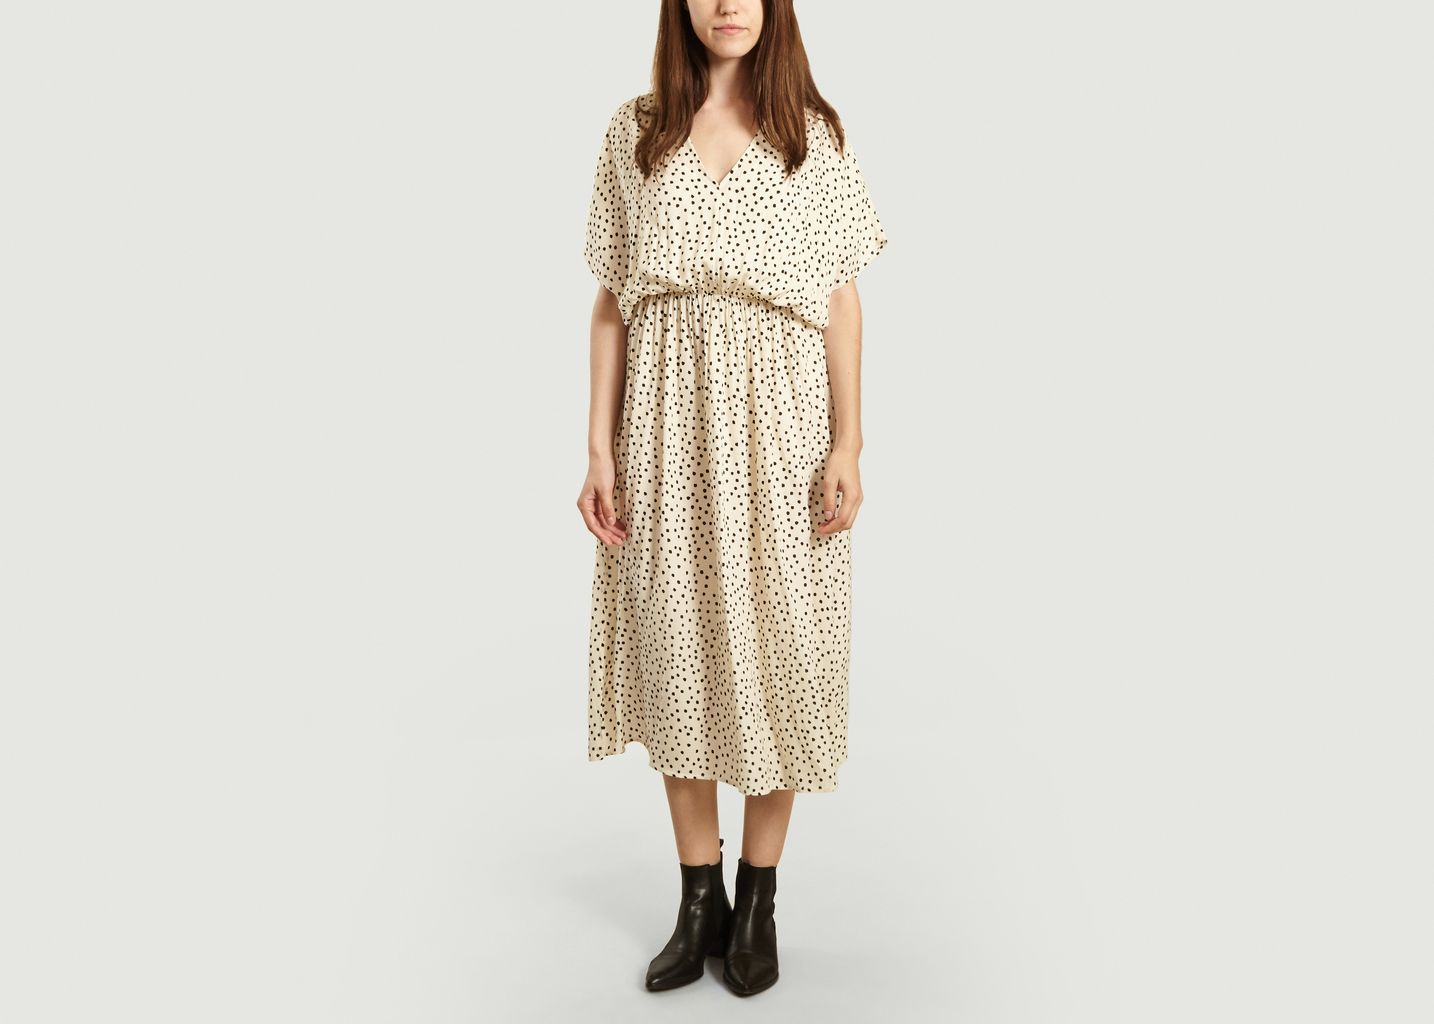 Dress in viscose with polka dots, ecru and black, short sleeves, elasticated fitted waist, V neckline, midi length, tone-on-tone finishes, flowing straight cut. The Andina dress, with its feminine and delicate print, will seduce you for its cut and the softness of its viscose. Its straight and long cut allows you to wear it on holiday as well as at the office, with heels or sneakers according to your desires.